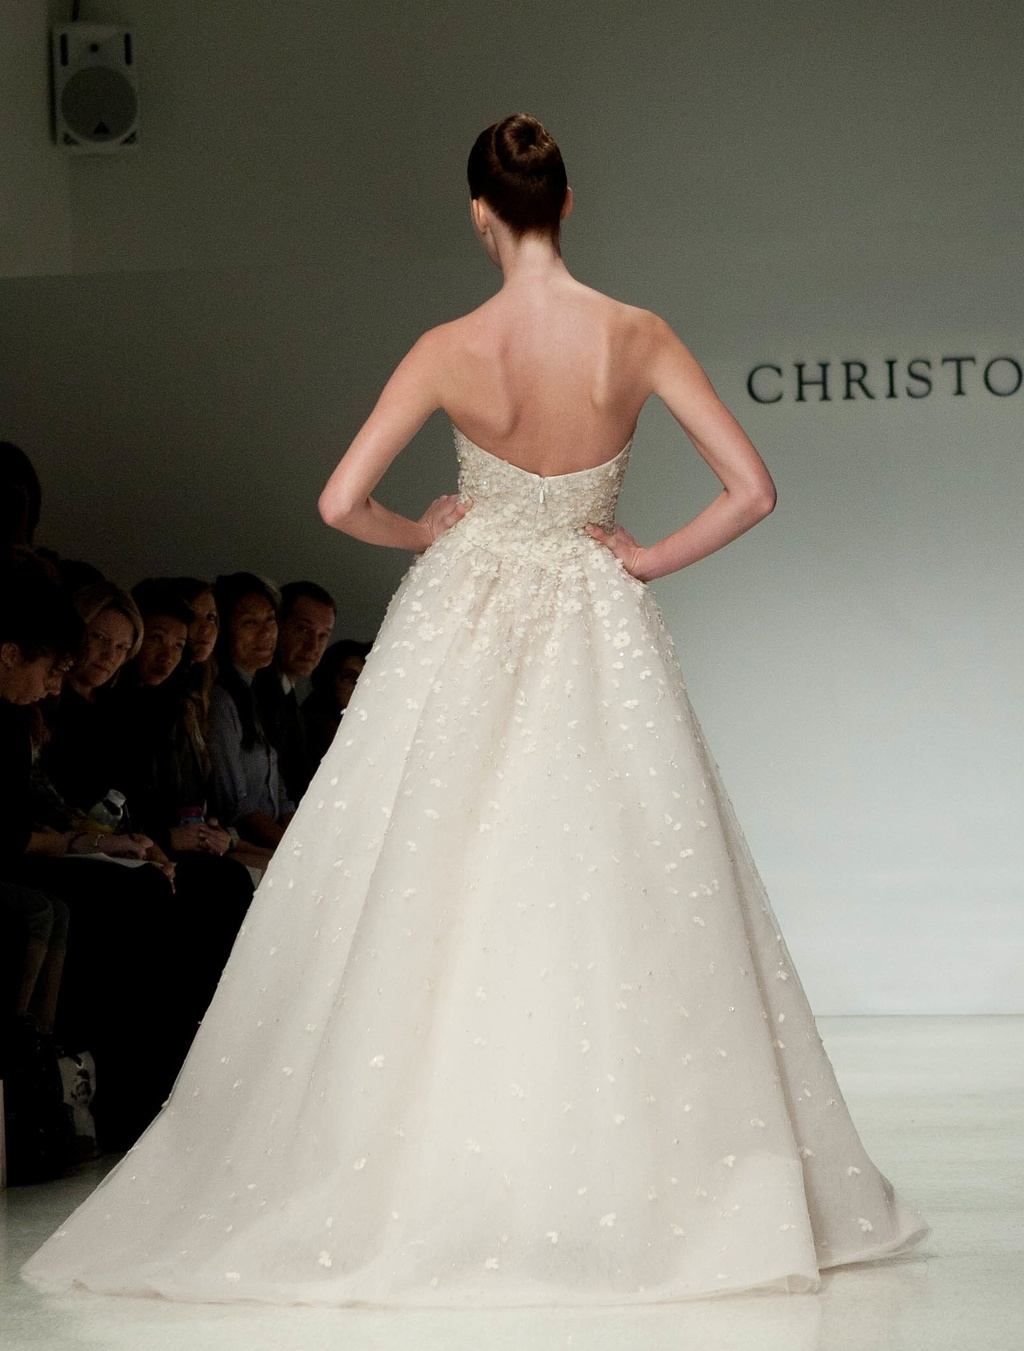 2012-wedding-dress-christos-bridal-gowns-peony-back.full